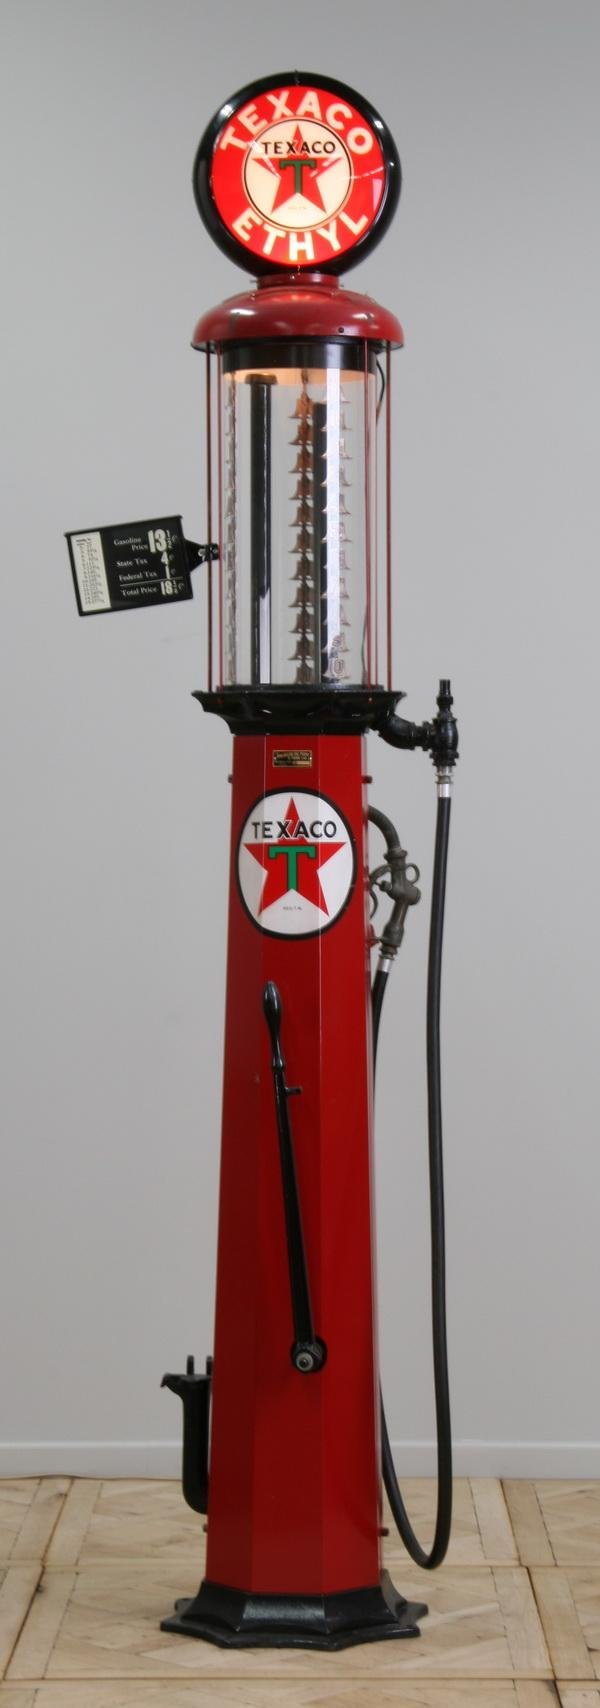 Vintage gas pumps glass advertising